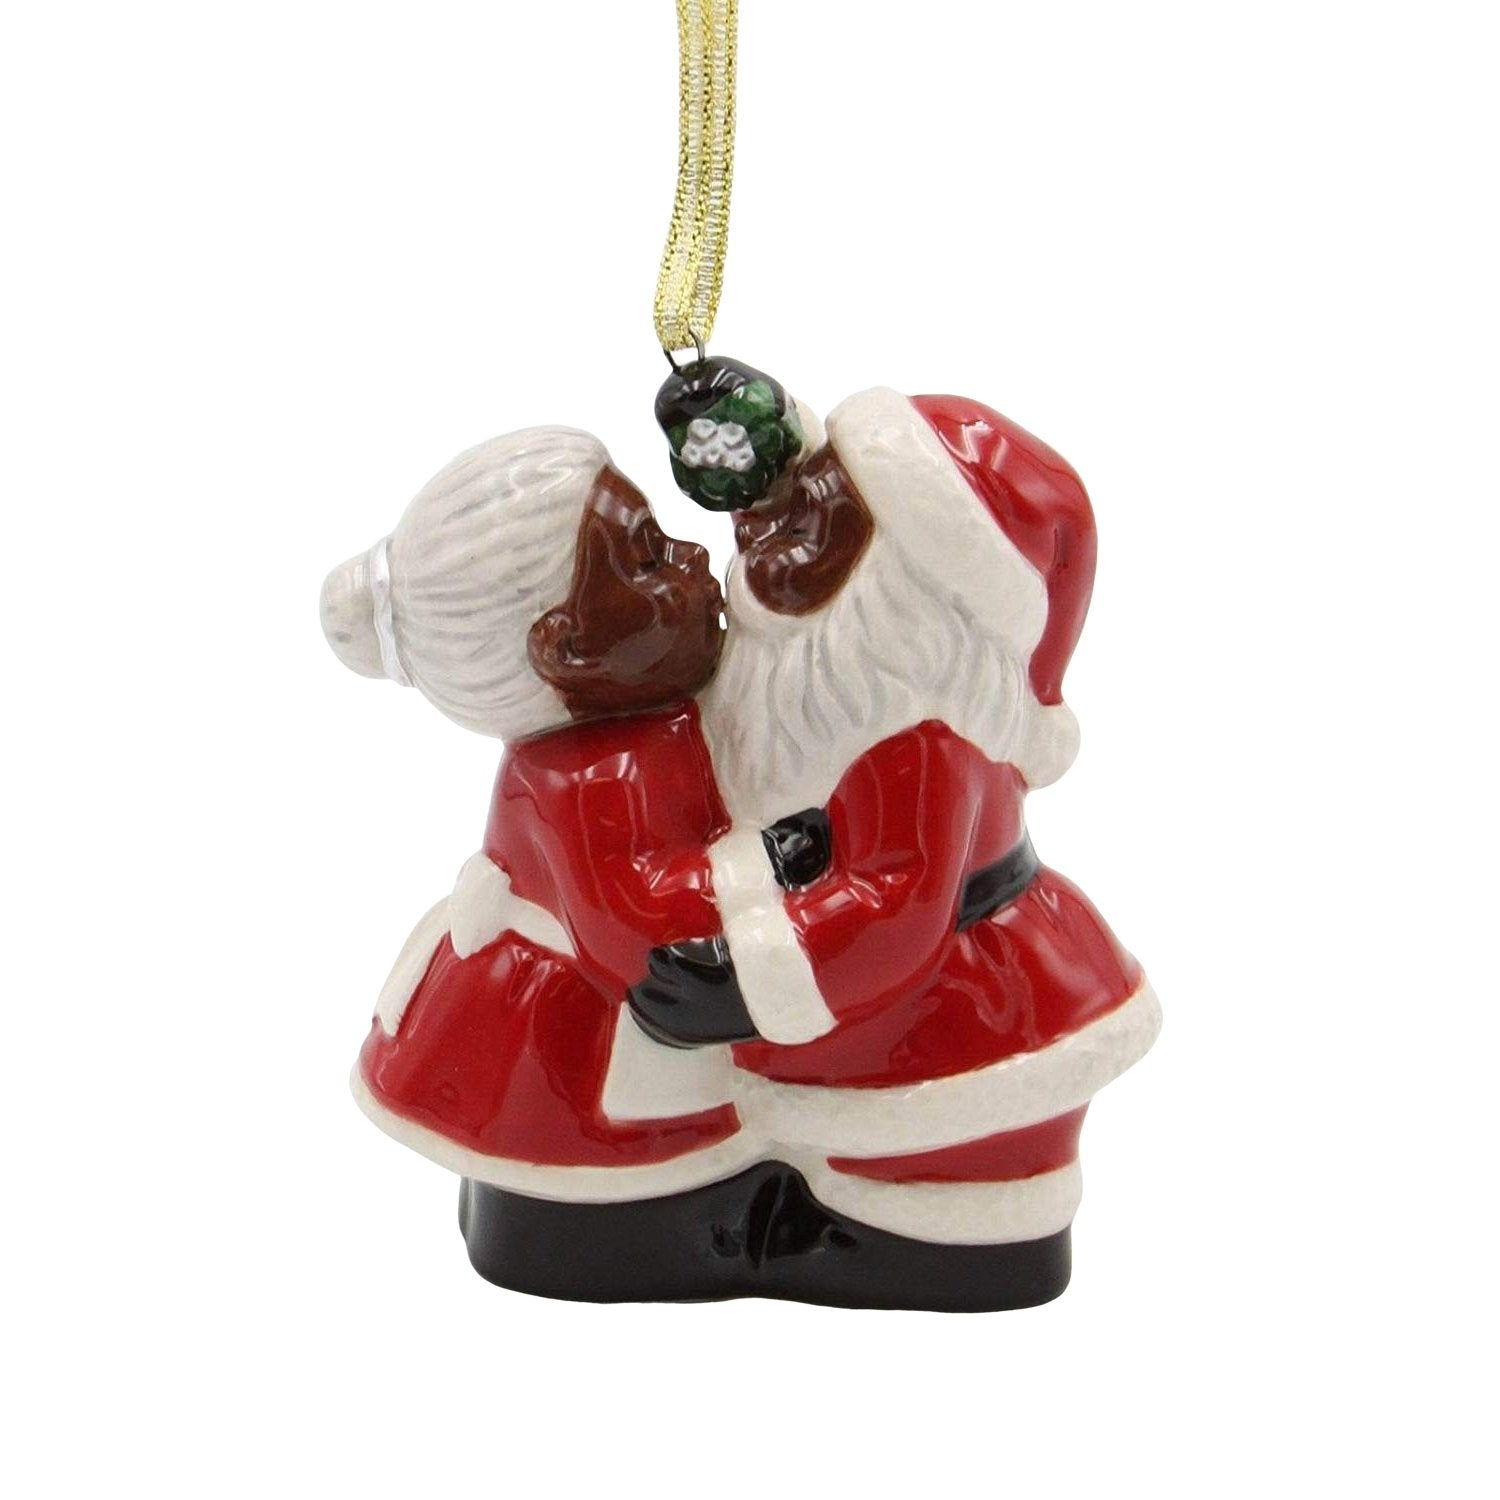 Under the Mistletoe: African American Mr. and Mrs. Santa Claus Ornament